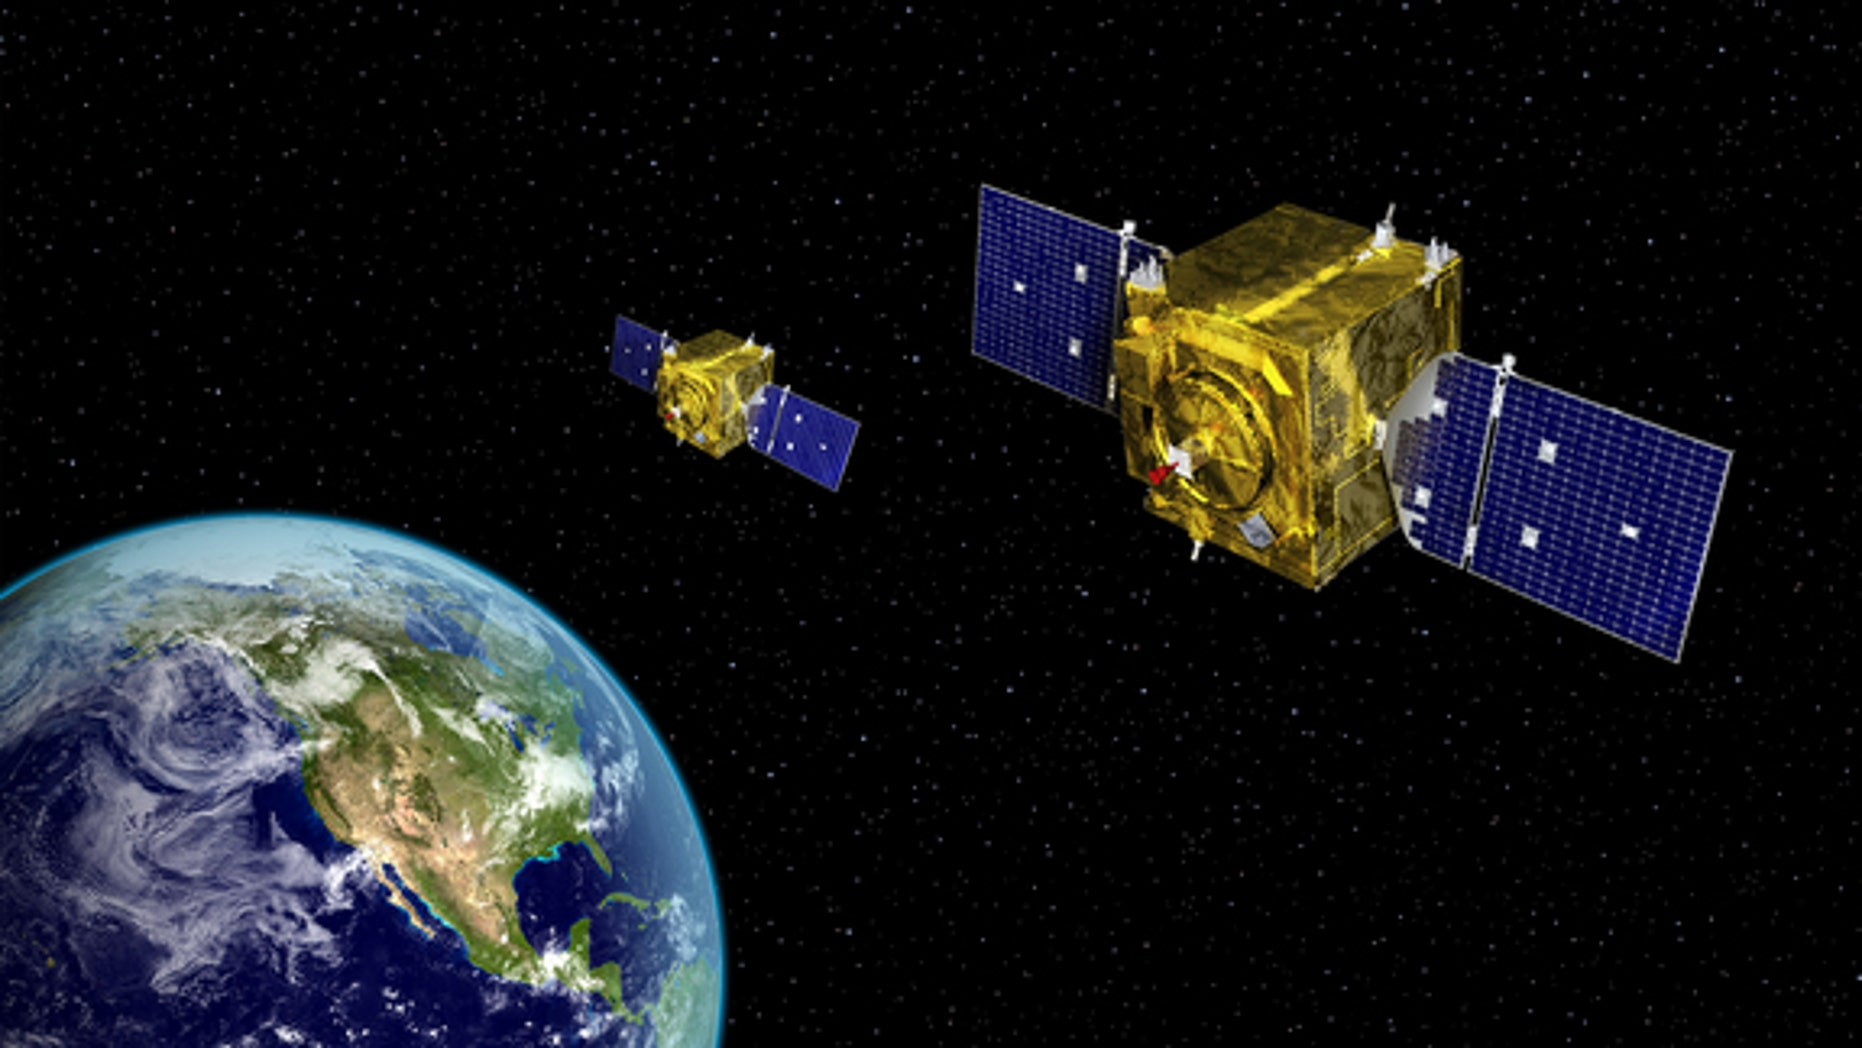 A space station launched by China in 2011, is expected to plummet to Earth within the next week.